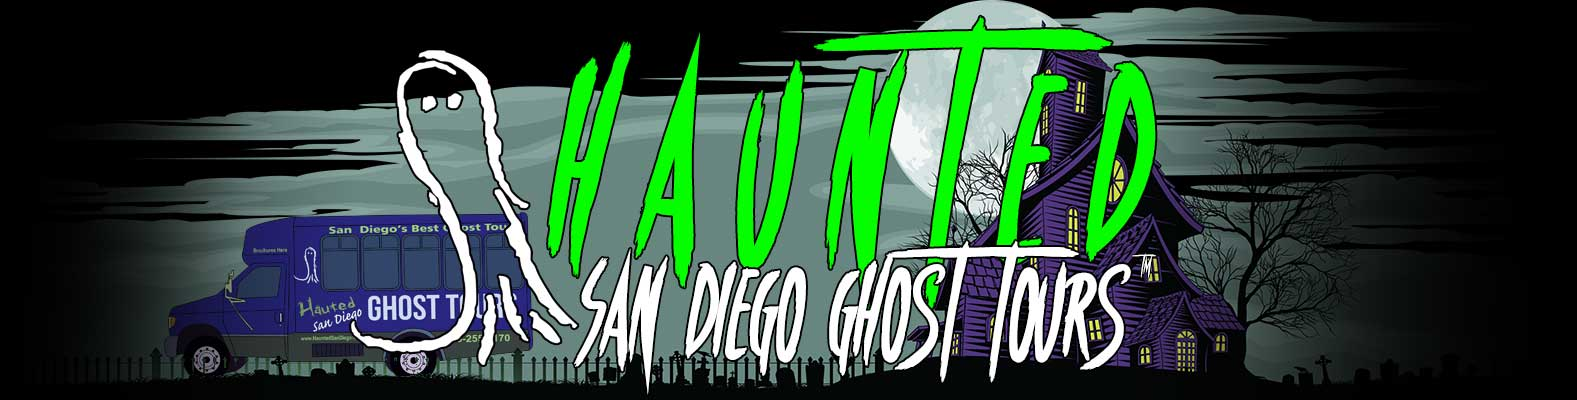 haunted-san-diego-ghost-tour-hero-new-mobile-2